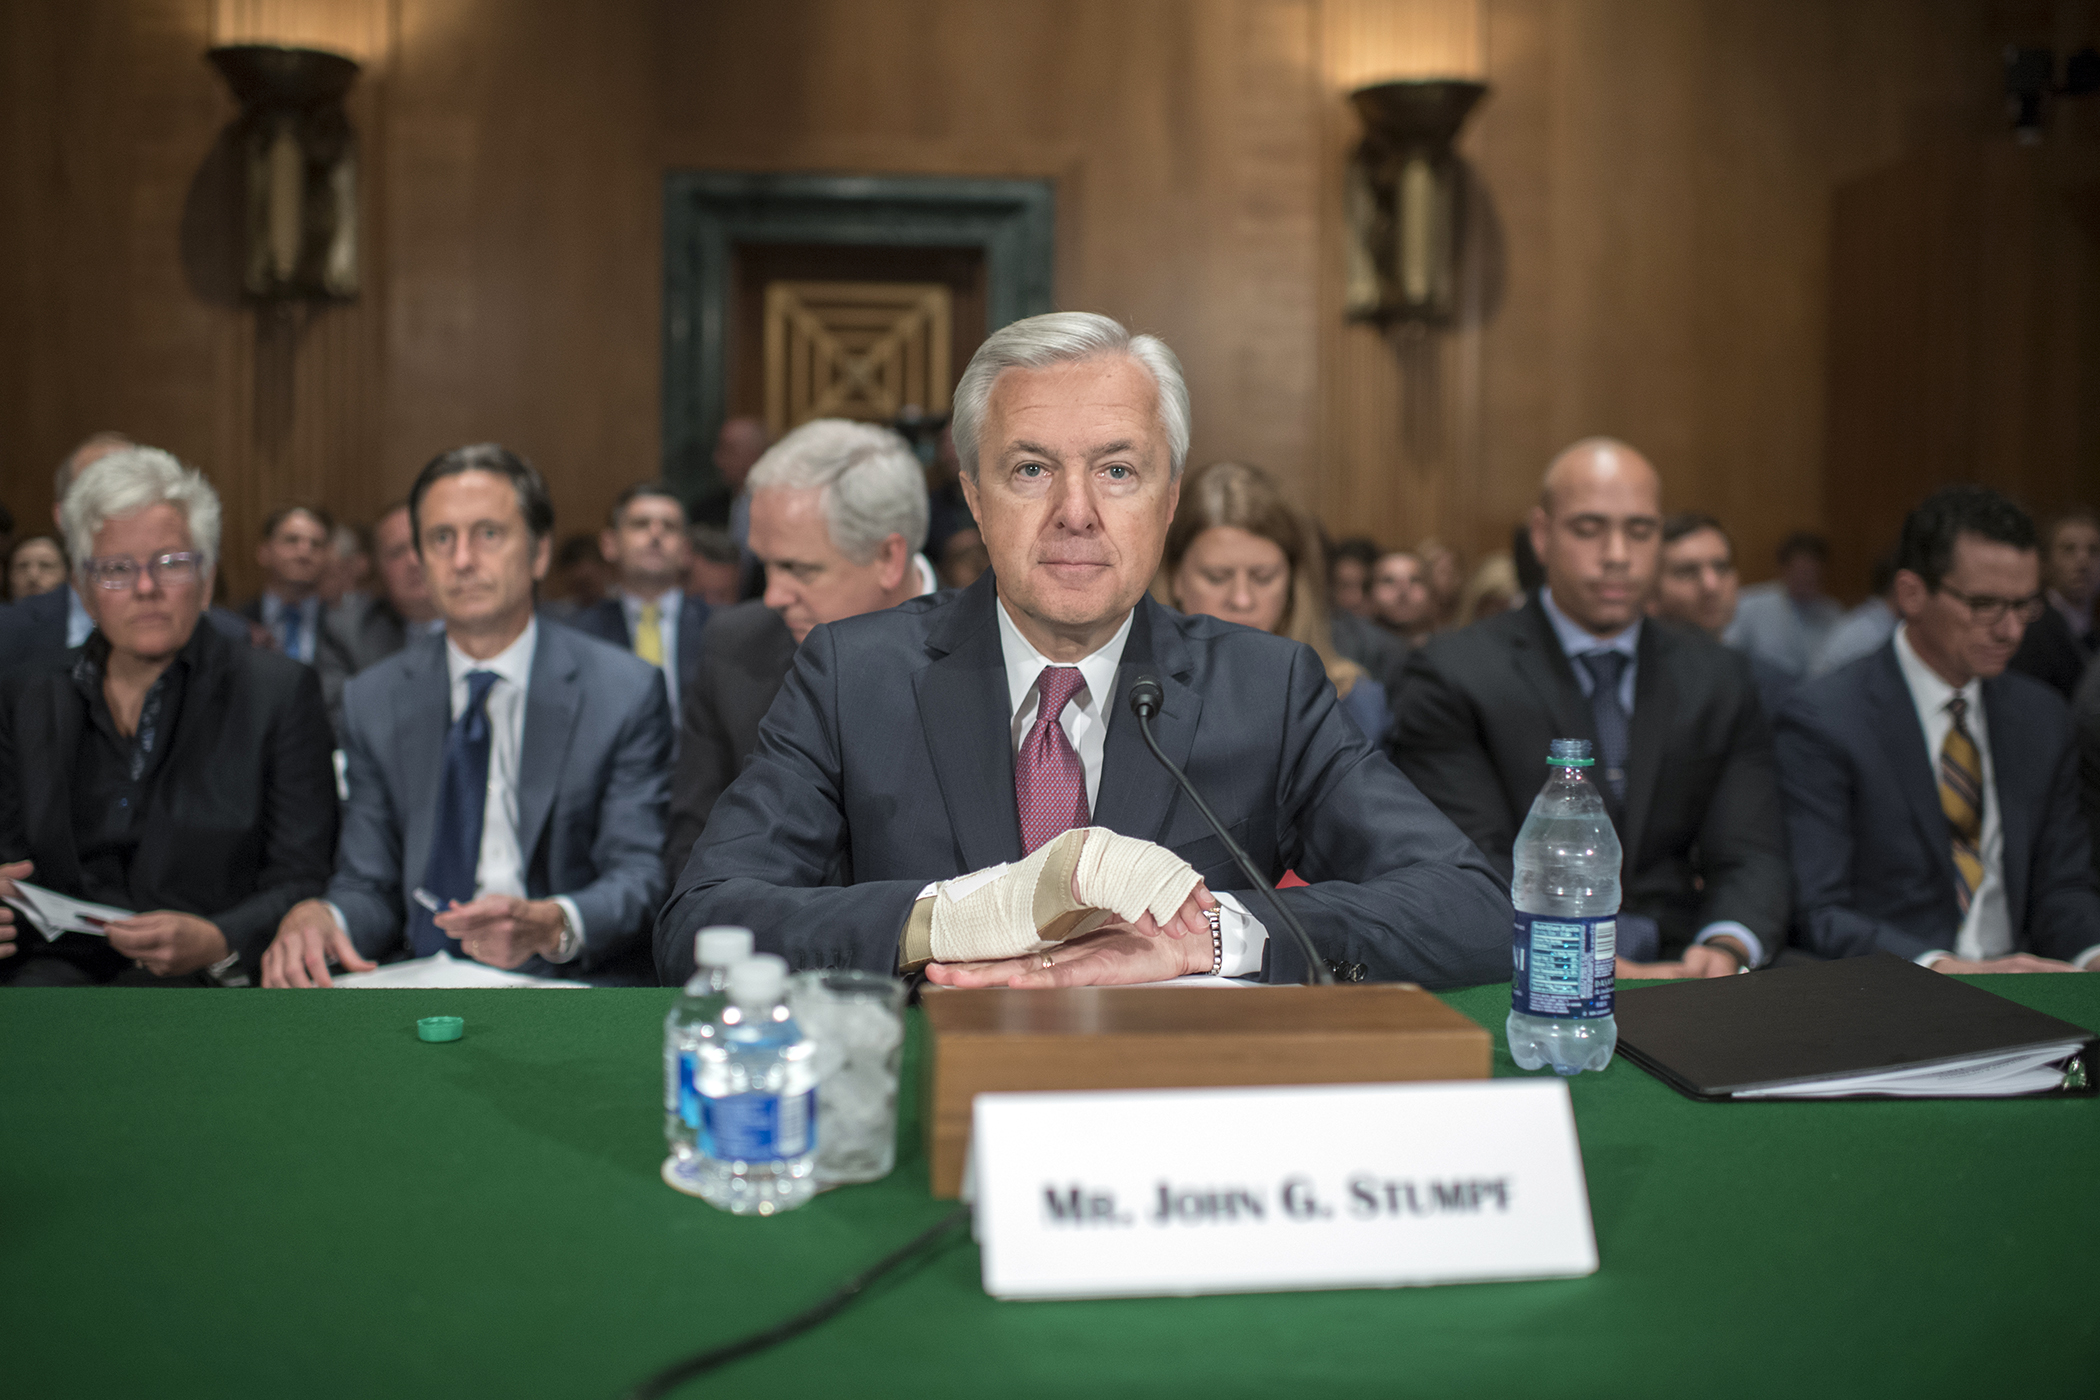 Wells Fargo CEO John Stumpf, center, prepares to testify at a Senate Banking, Housing, and Urban Affairs hearing in Dirksen Building, September 20, 2016, on the company's unauthorized accounts opened under customers' names.